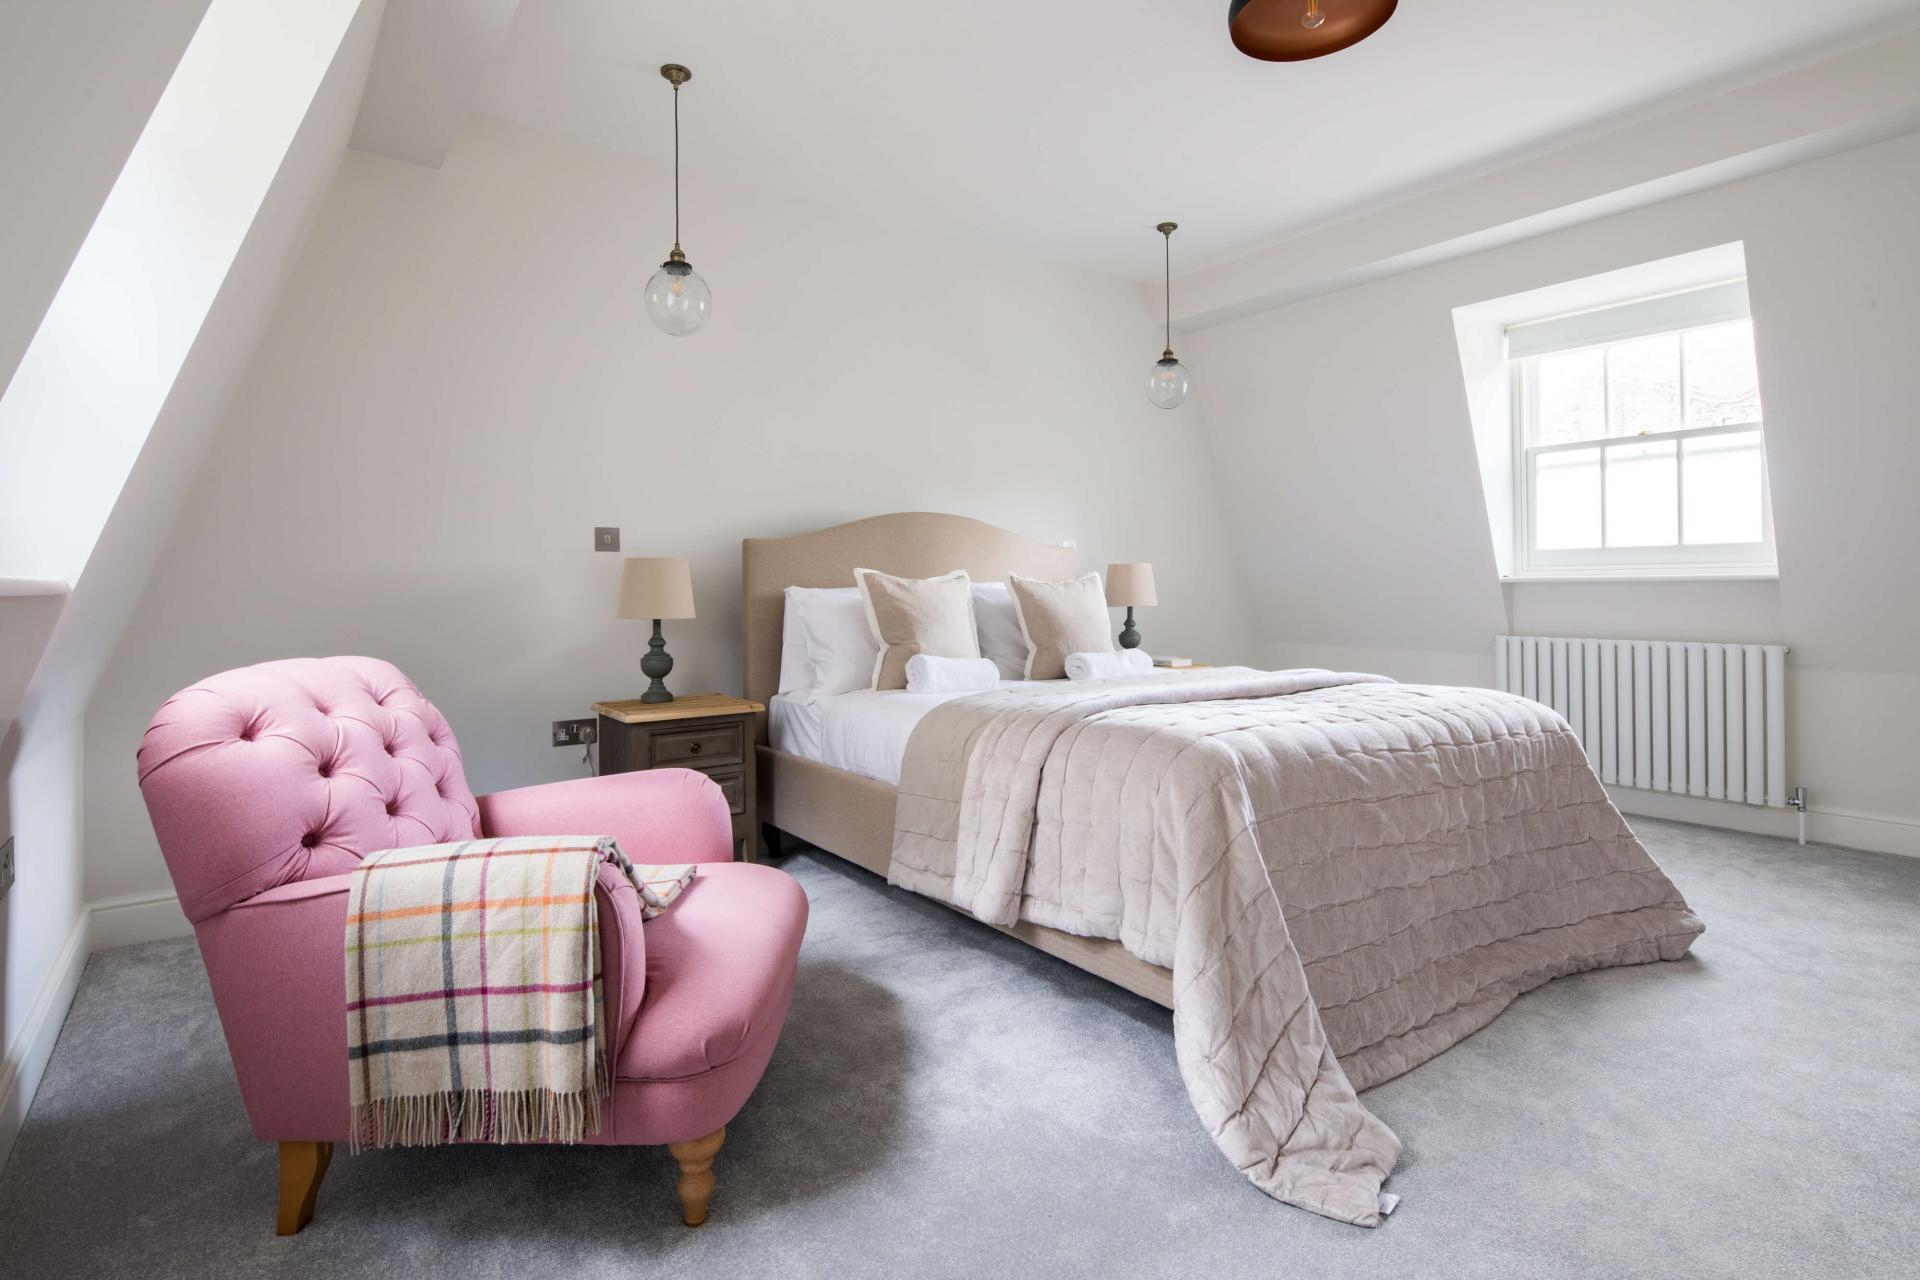 Decor of Rainsford Mews, Paddington, London - Citybase Apartments